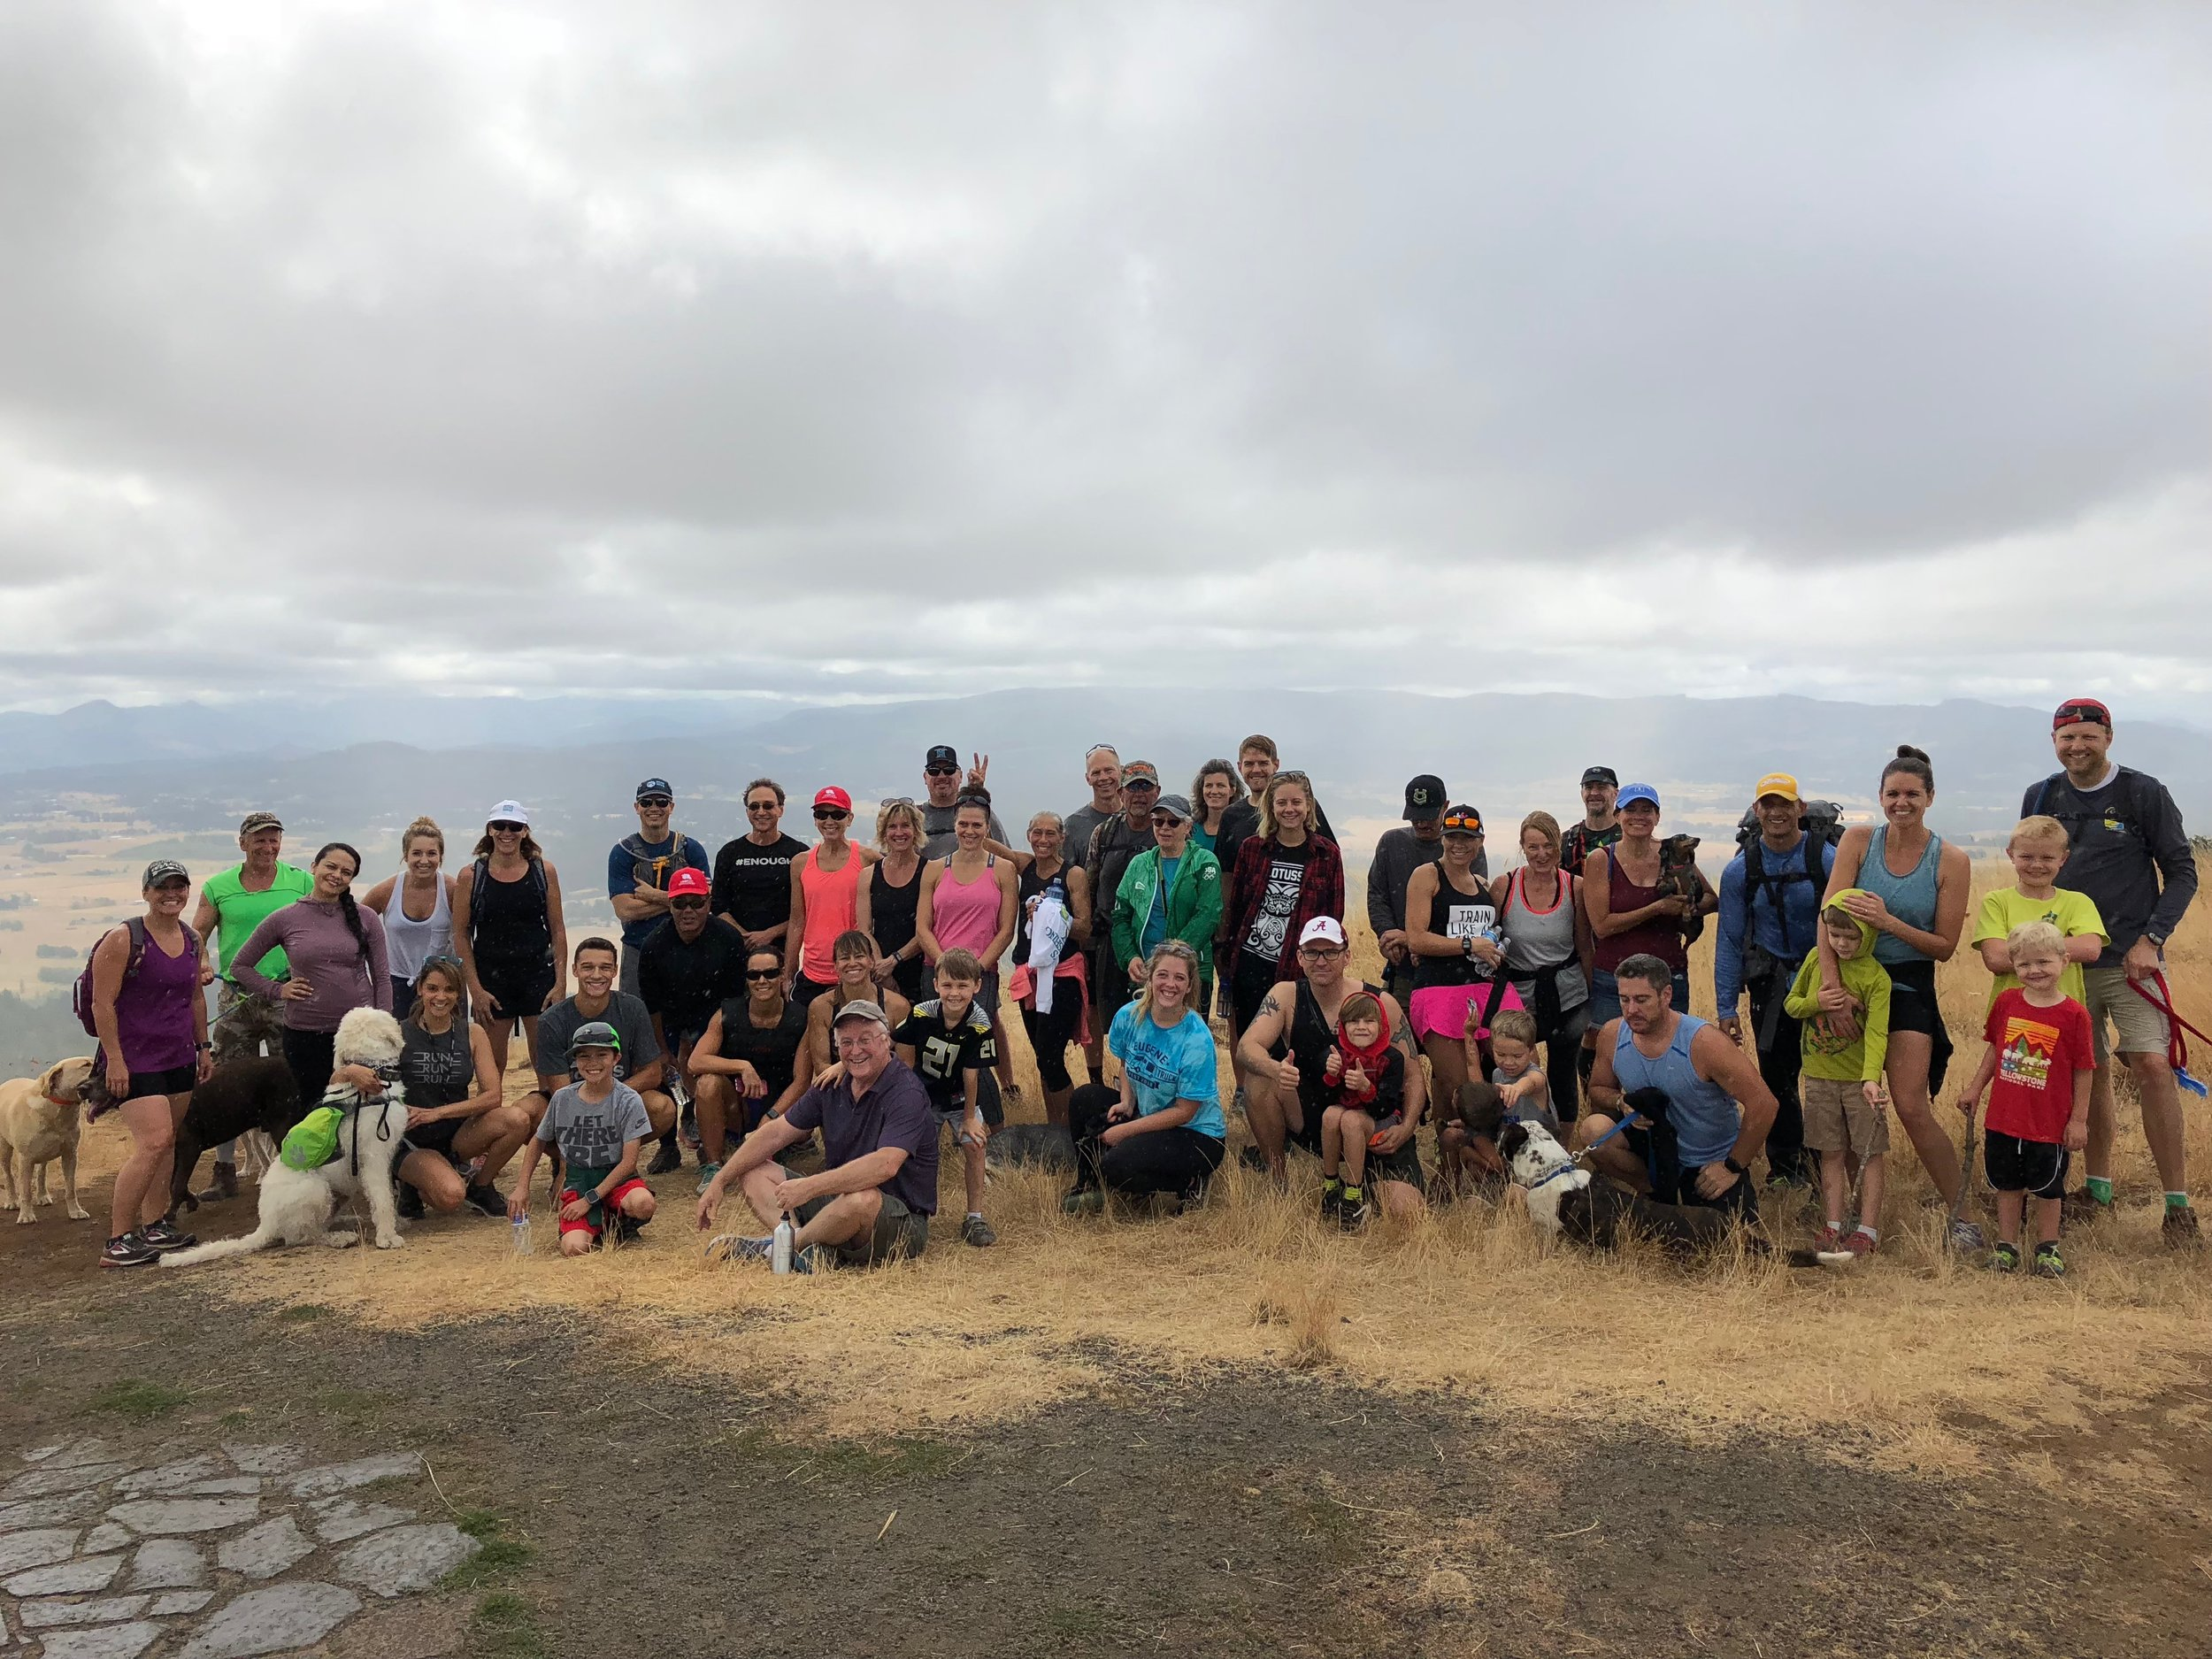 A group of Looking Glass supporters takes a break for a group photo atop the summit at Mount Pisgah during the Looking Glass Hike for Hope fundraiser event on Saturday, August 11th.